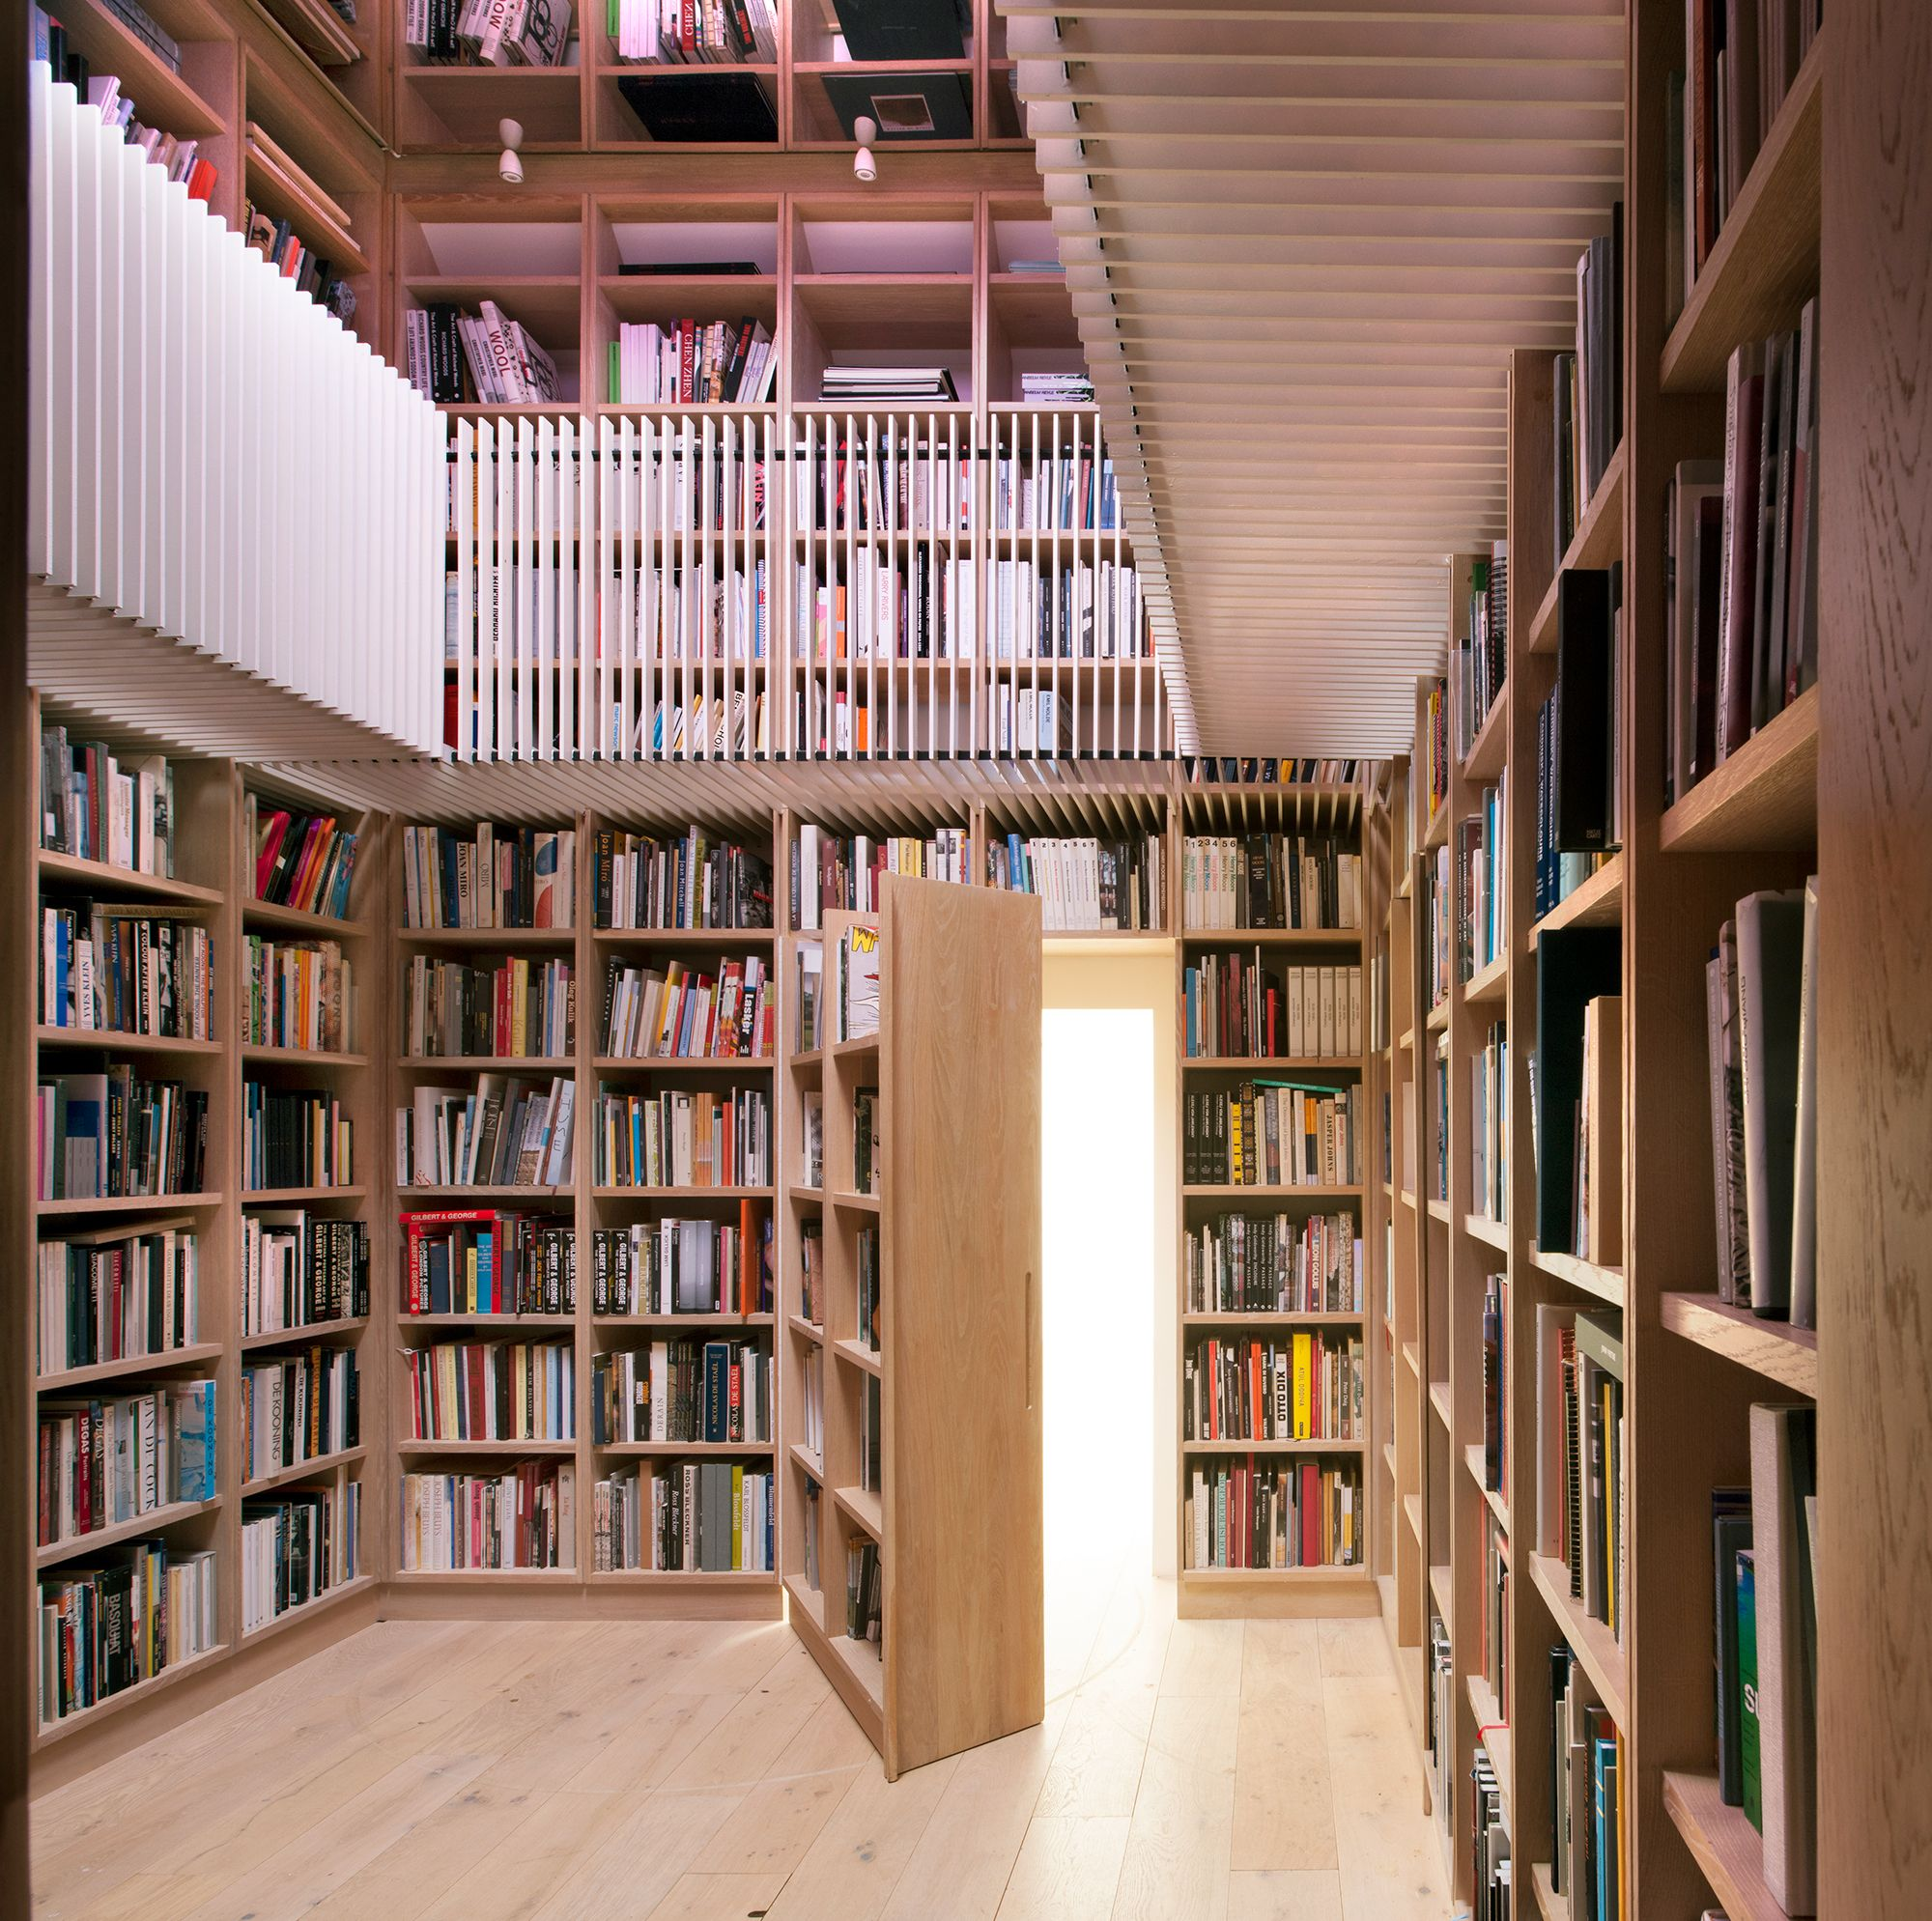 45 Library Design Ideas That'll Make You Want to Curl Up with a Book